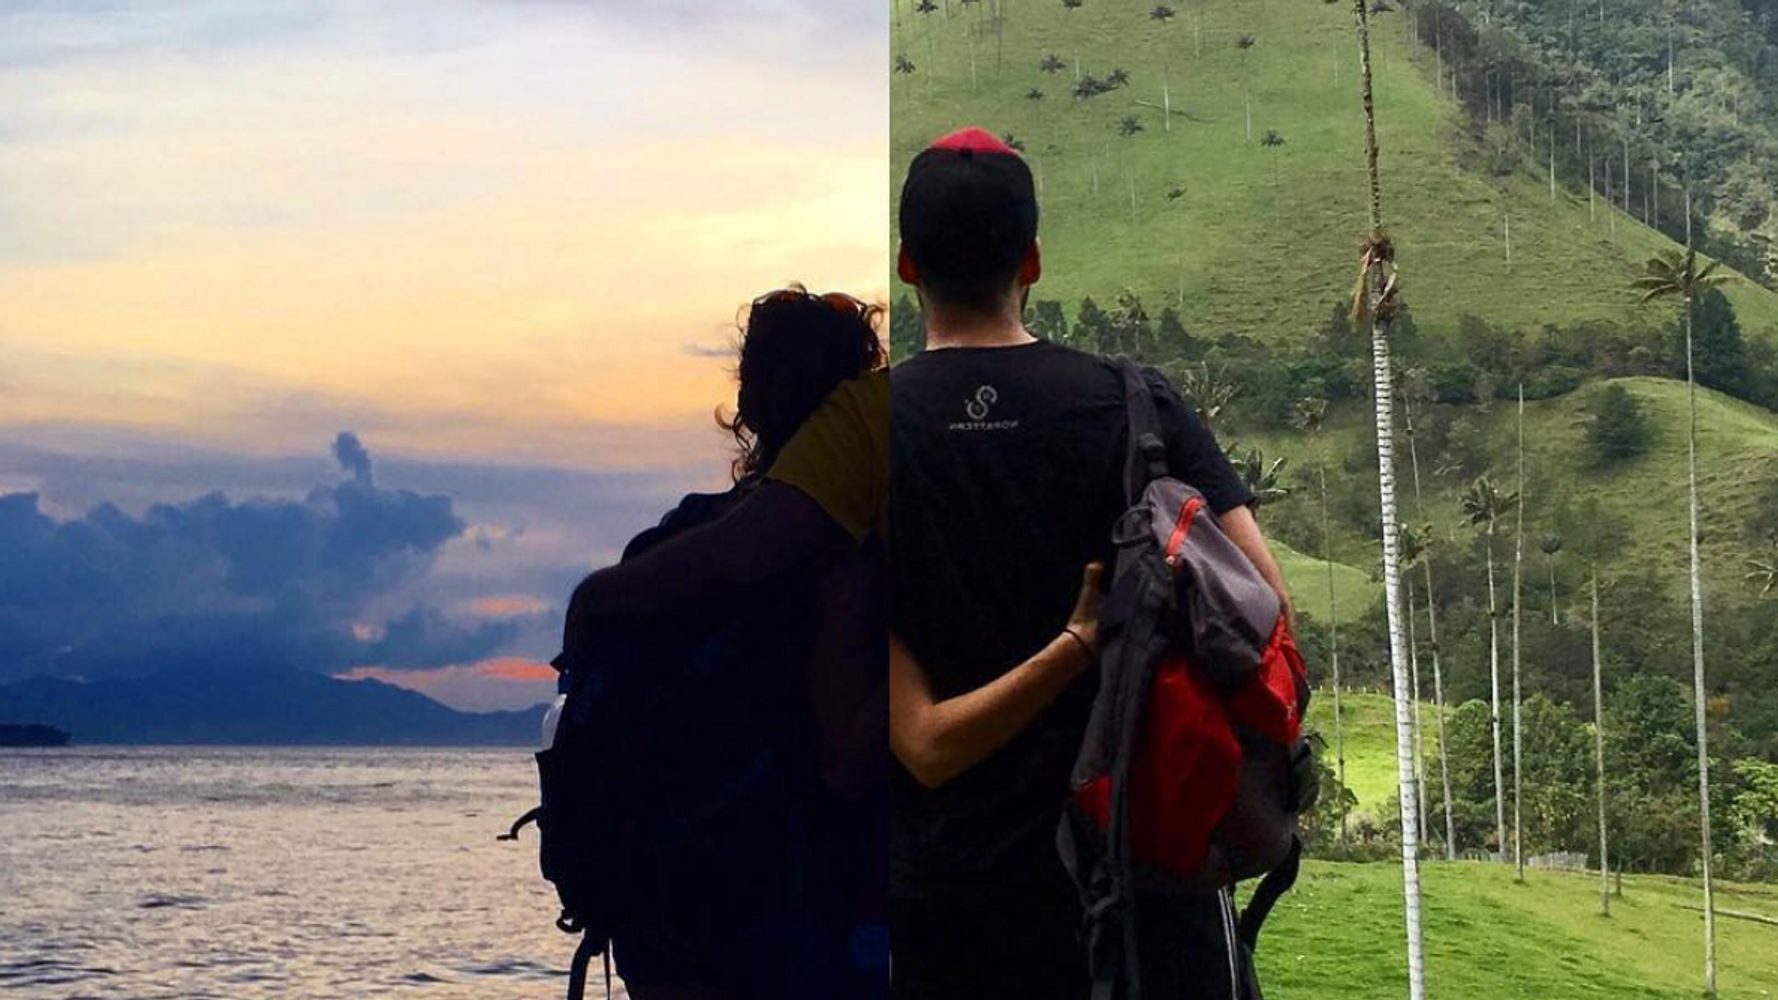 12 Little Ways Couples In Long-Distance Relationships Stay Connected